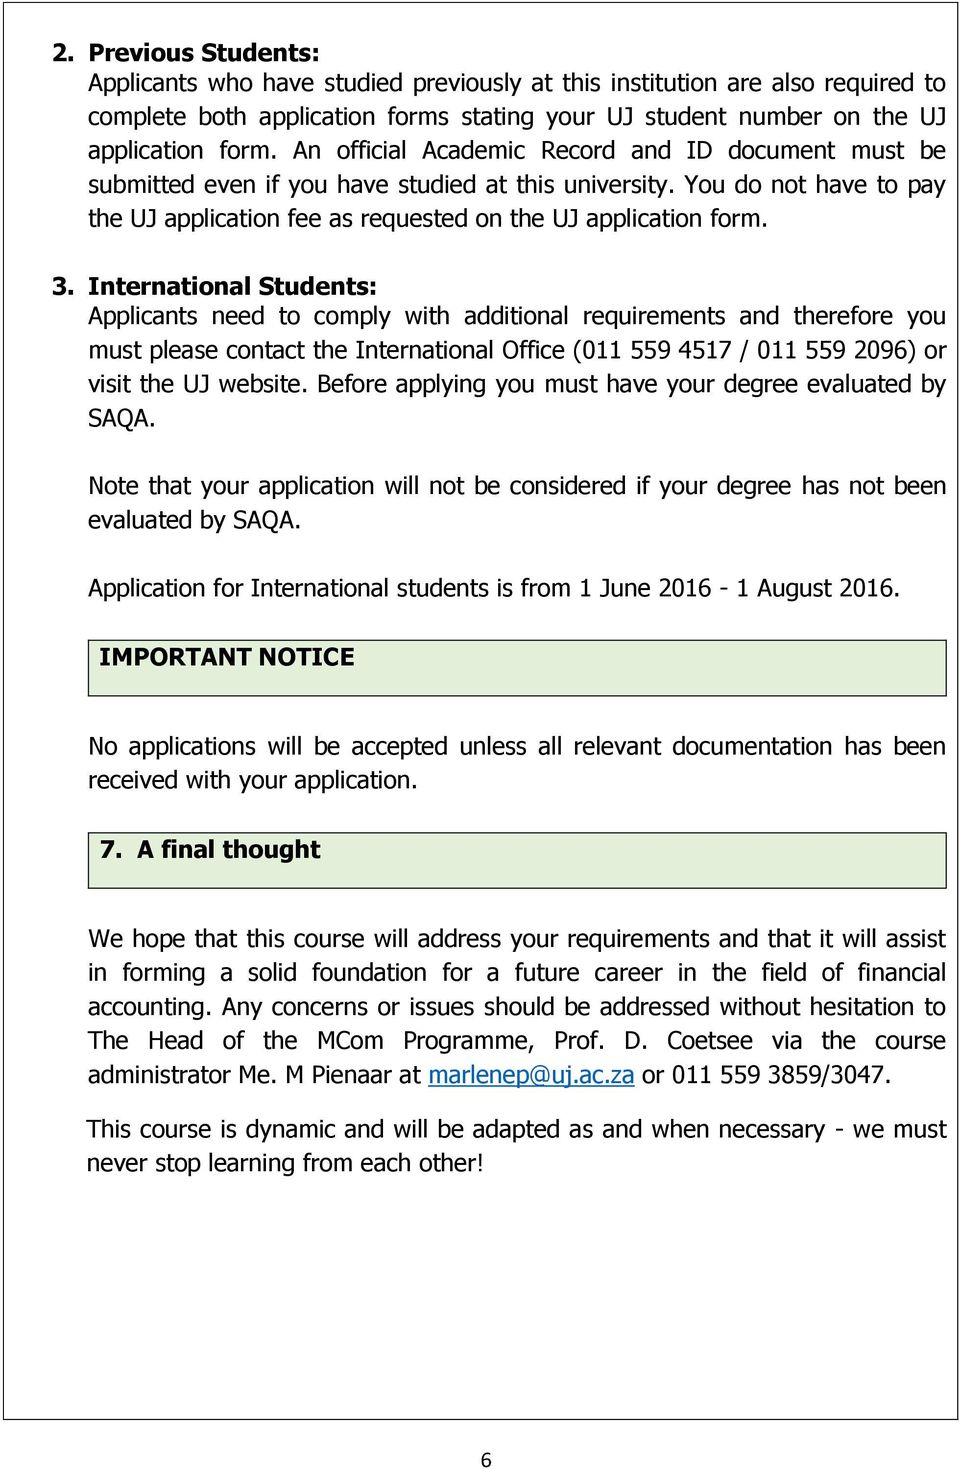 International Students: Applicants need to comply with additional requirements and therefore you must please contact the International Office (011 559 4517 / 011 559 2096) or visit the UJ website.